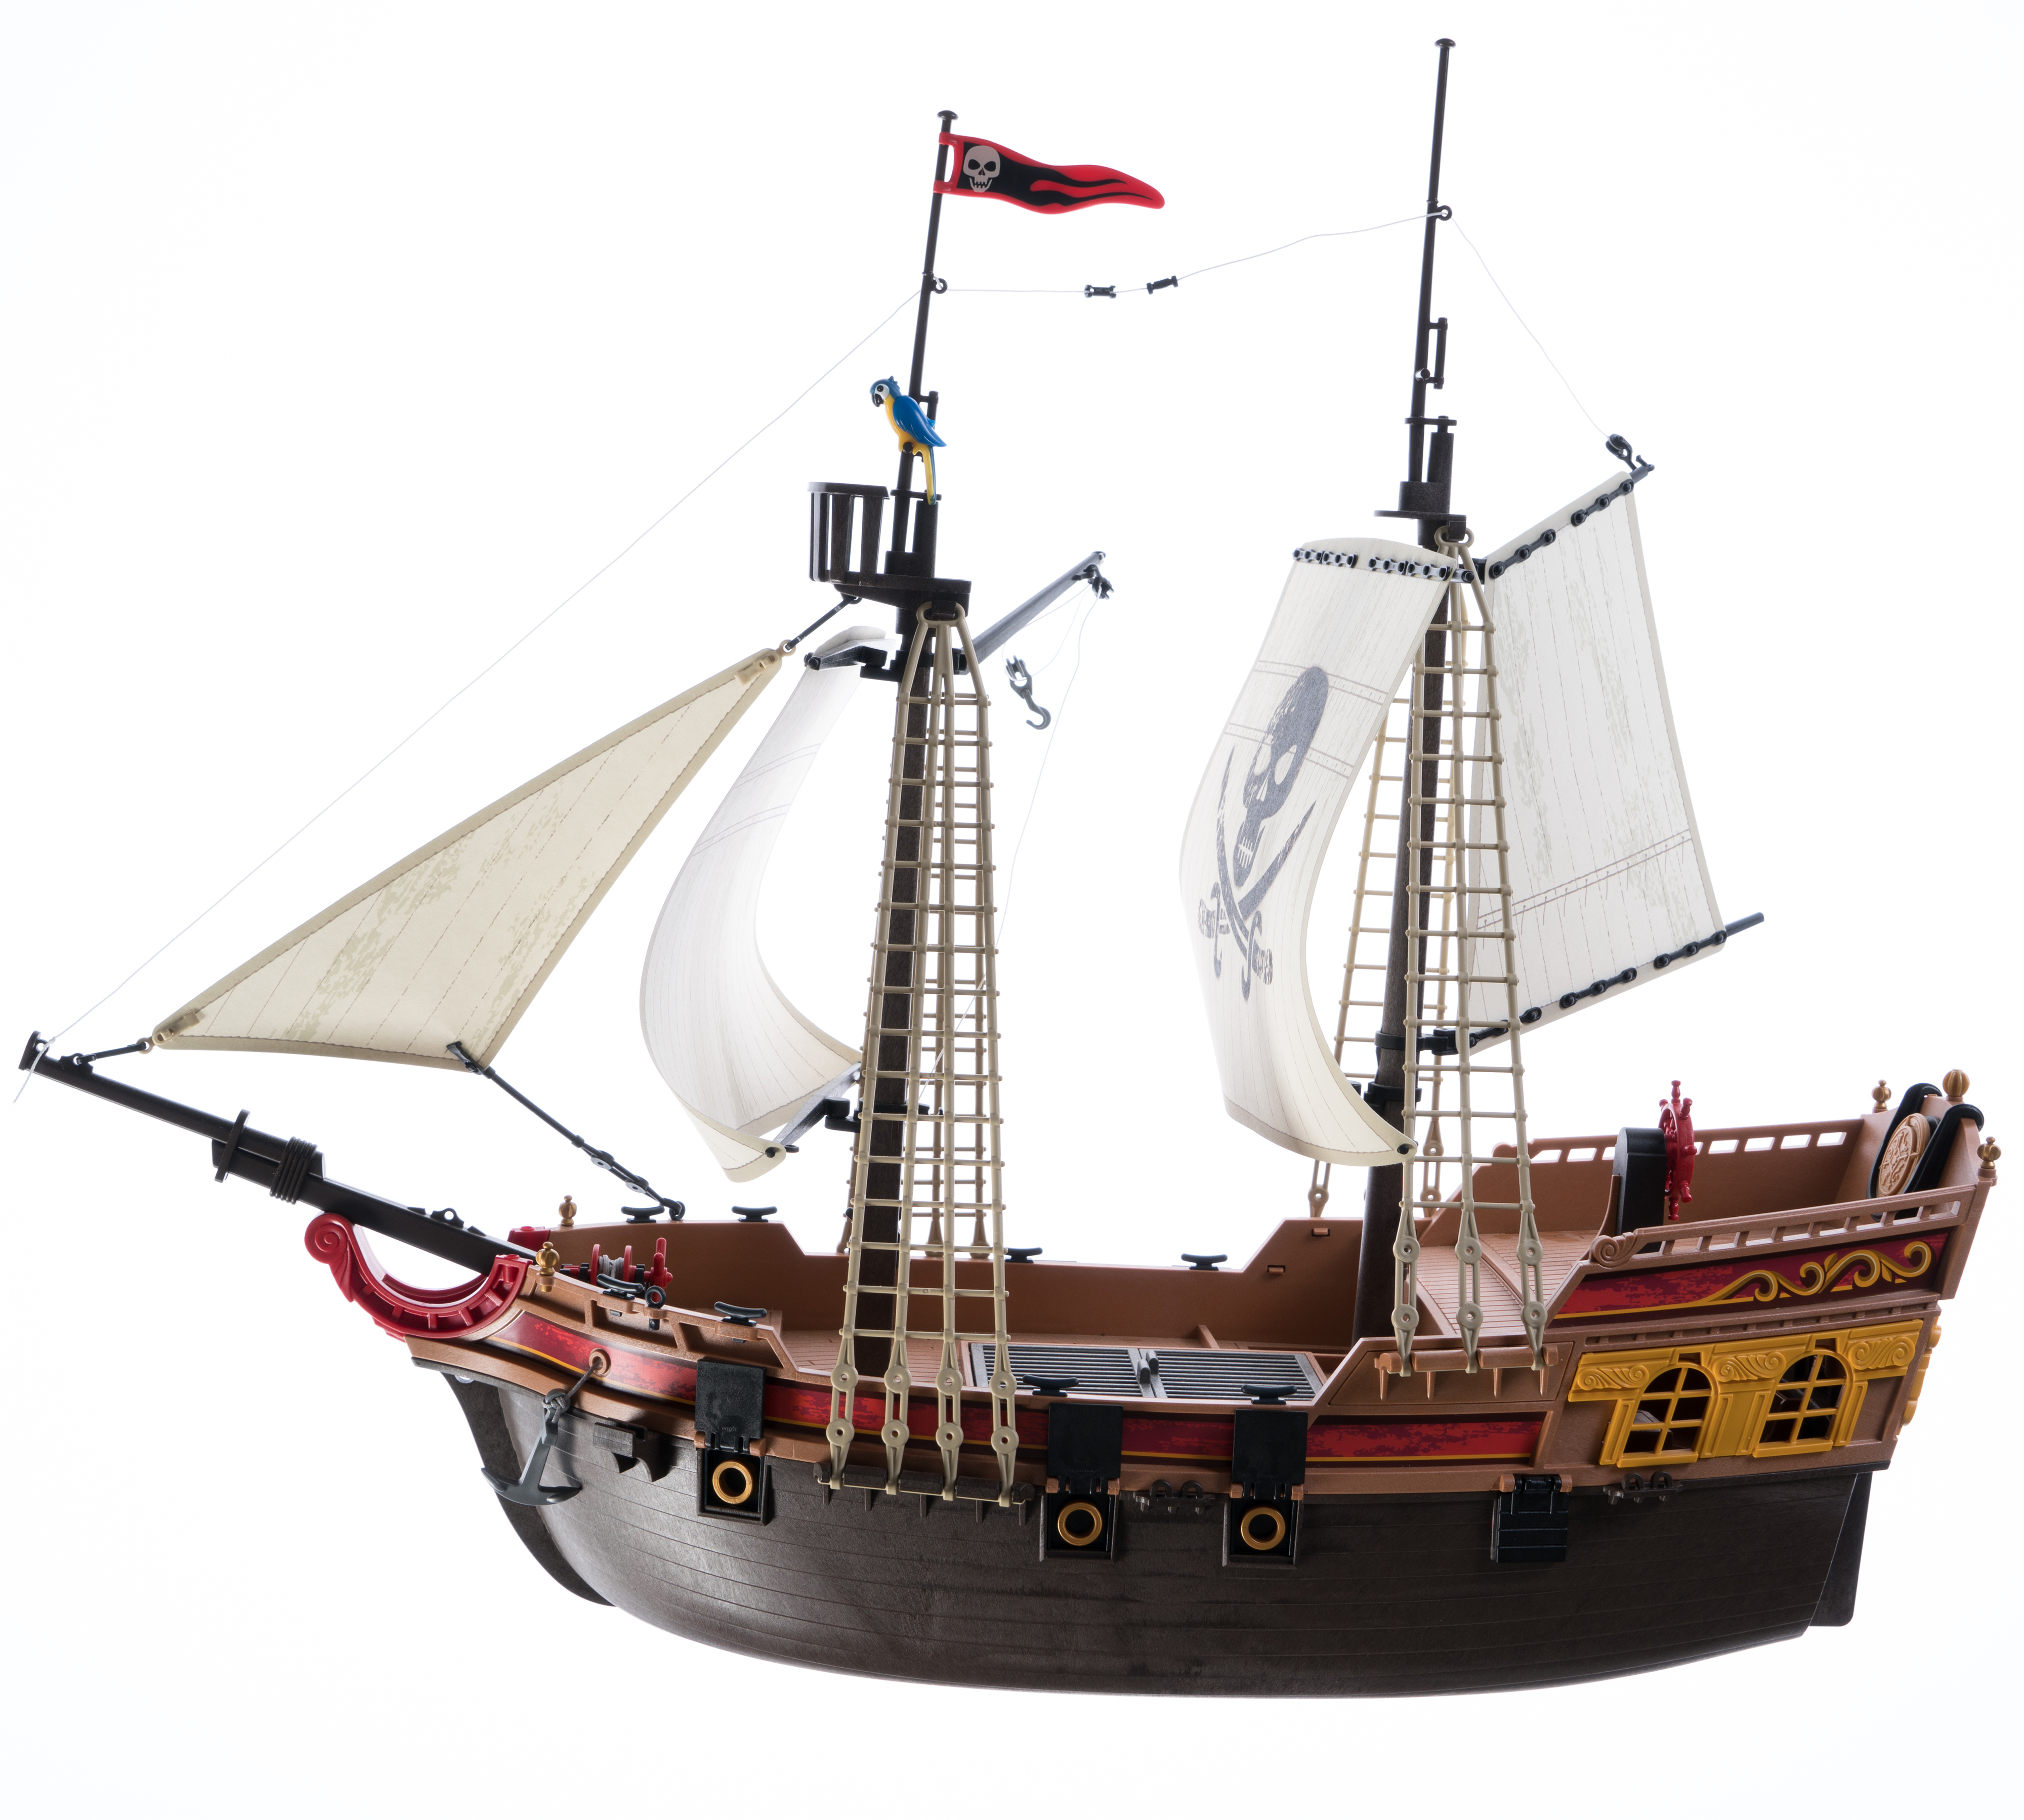 free usps shipping software pirate ship